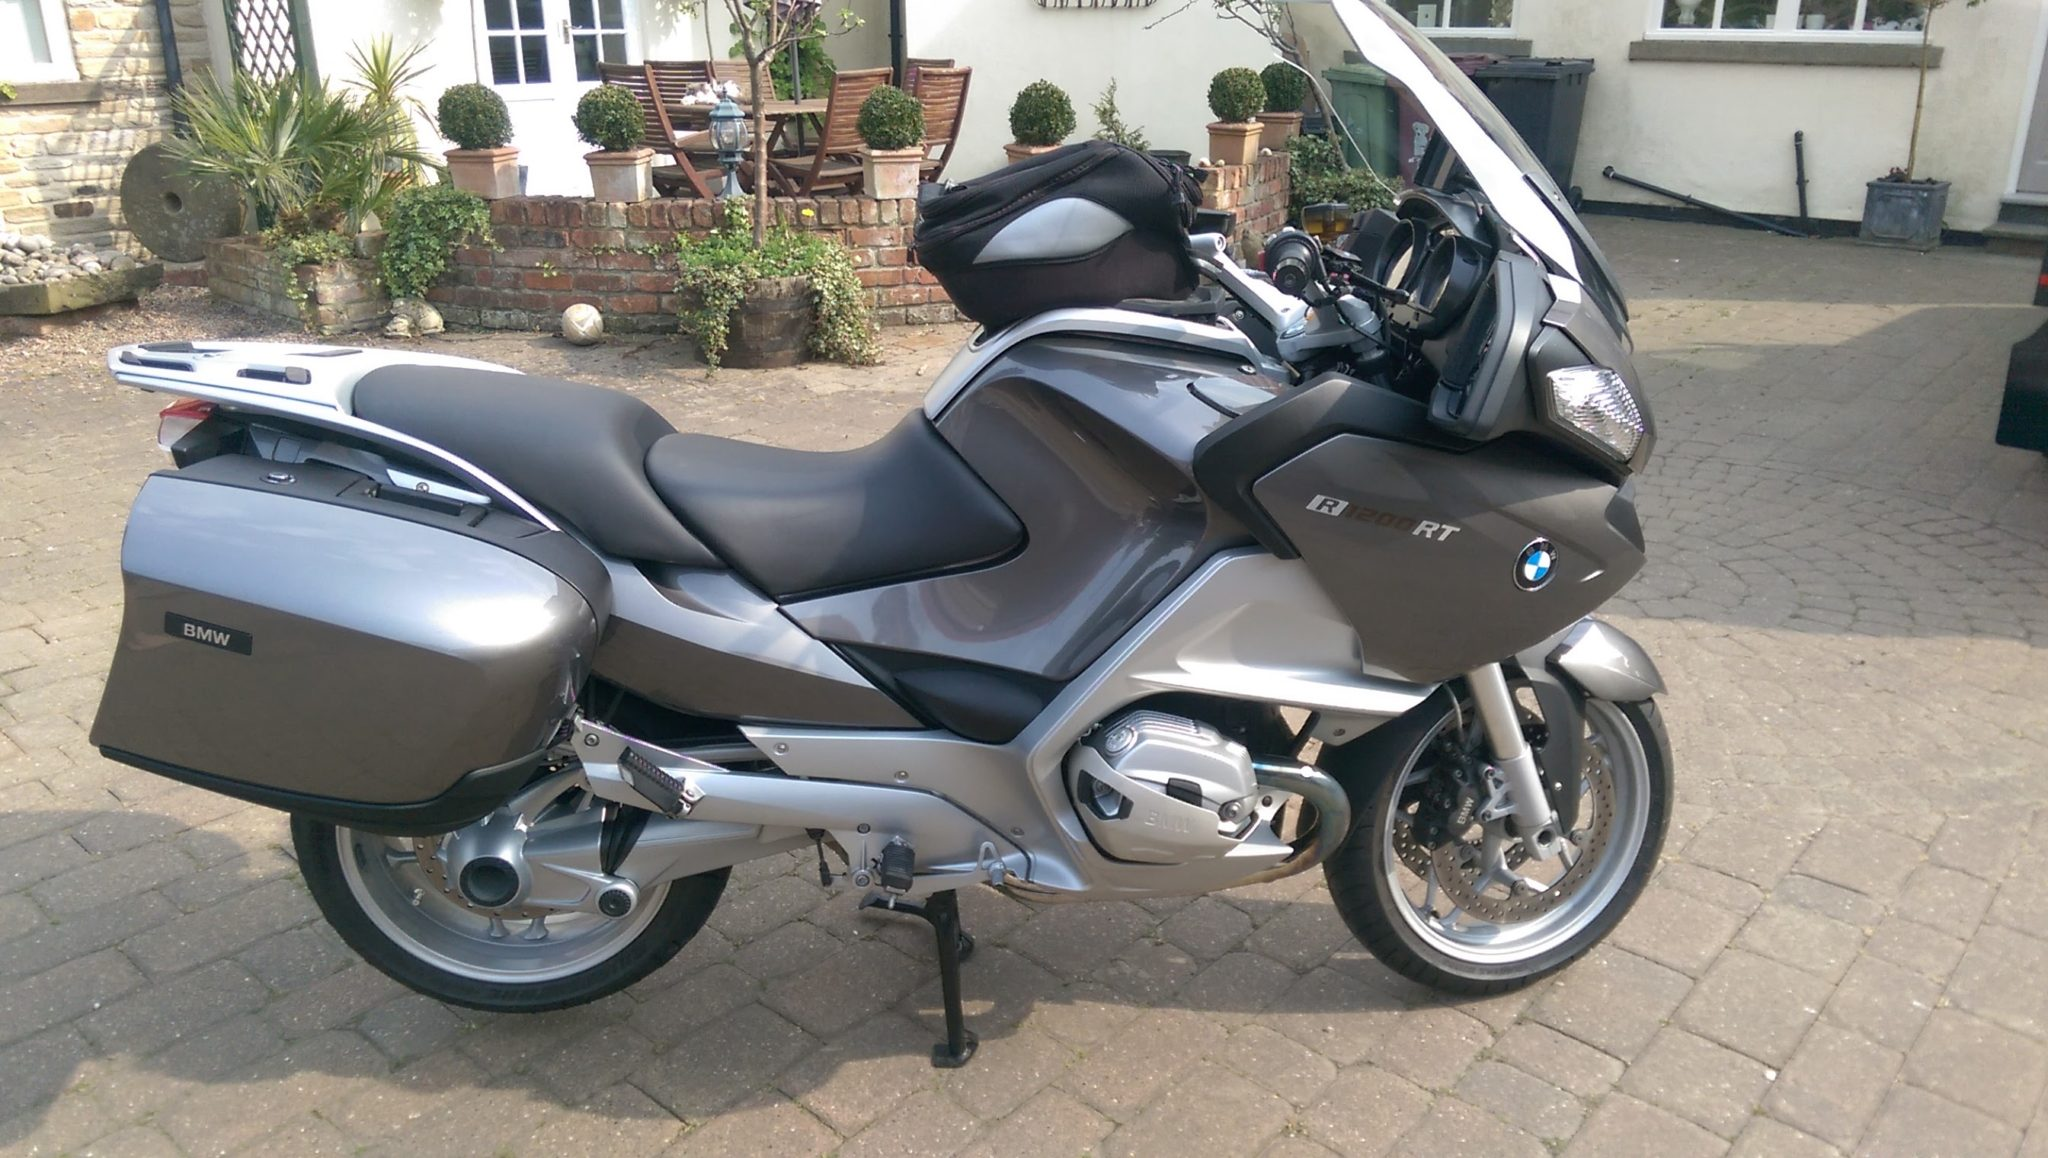 Dave – BMW R1200RT